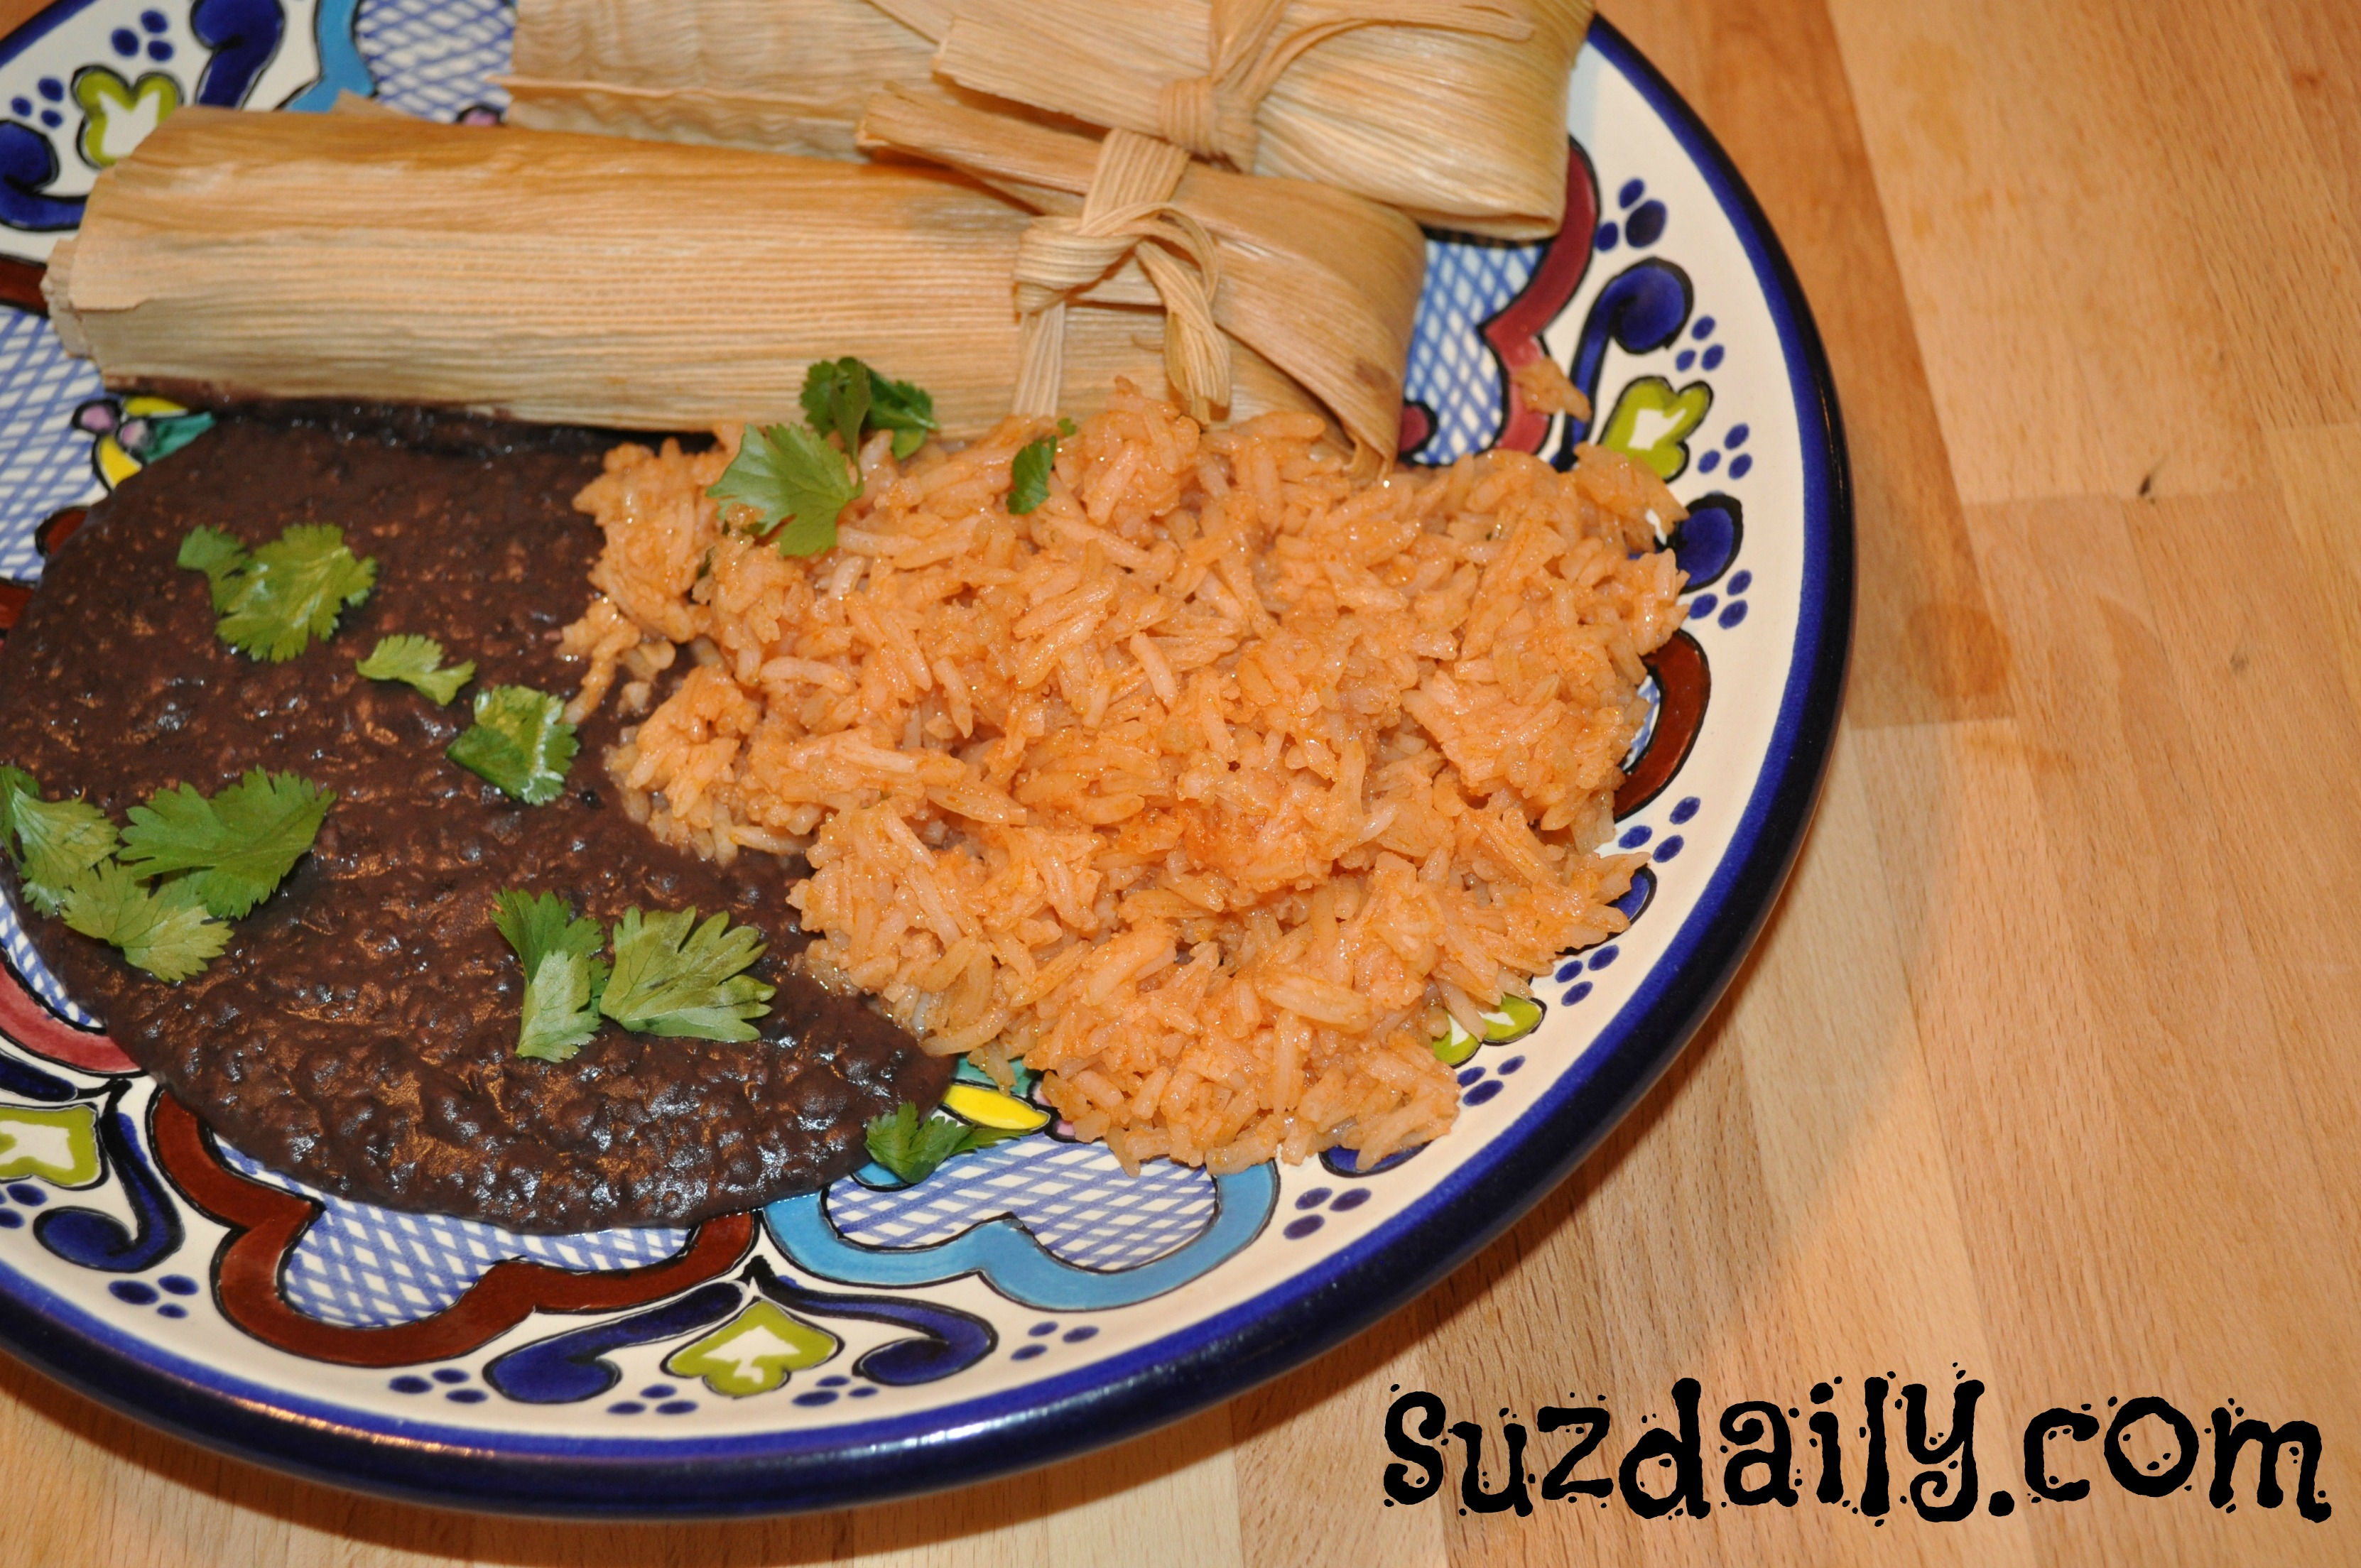 How to Make Refried Beans with Black Beans